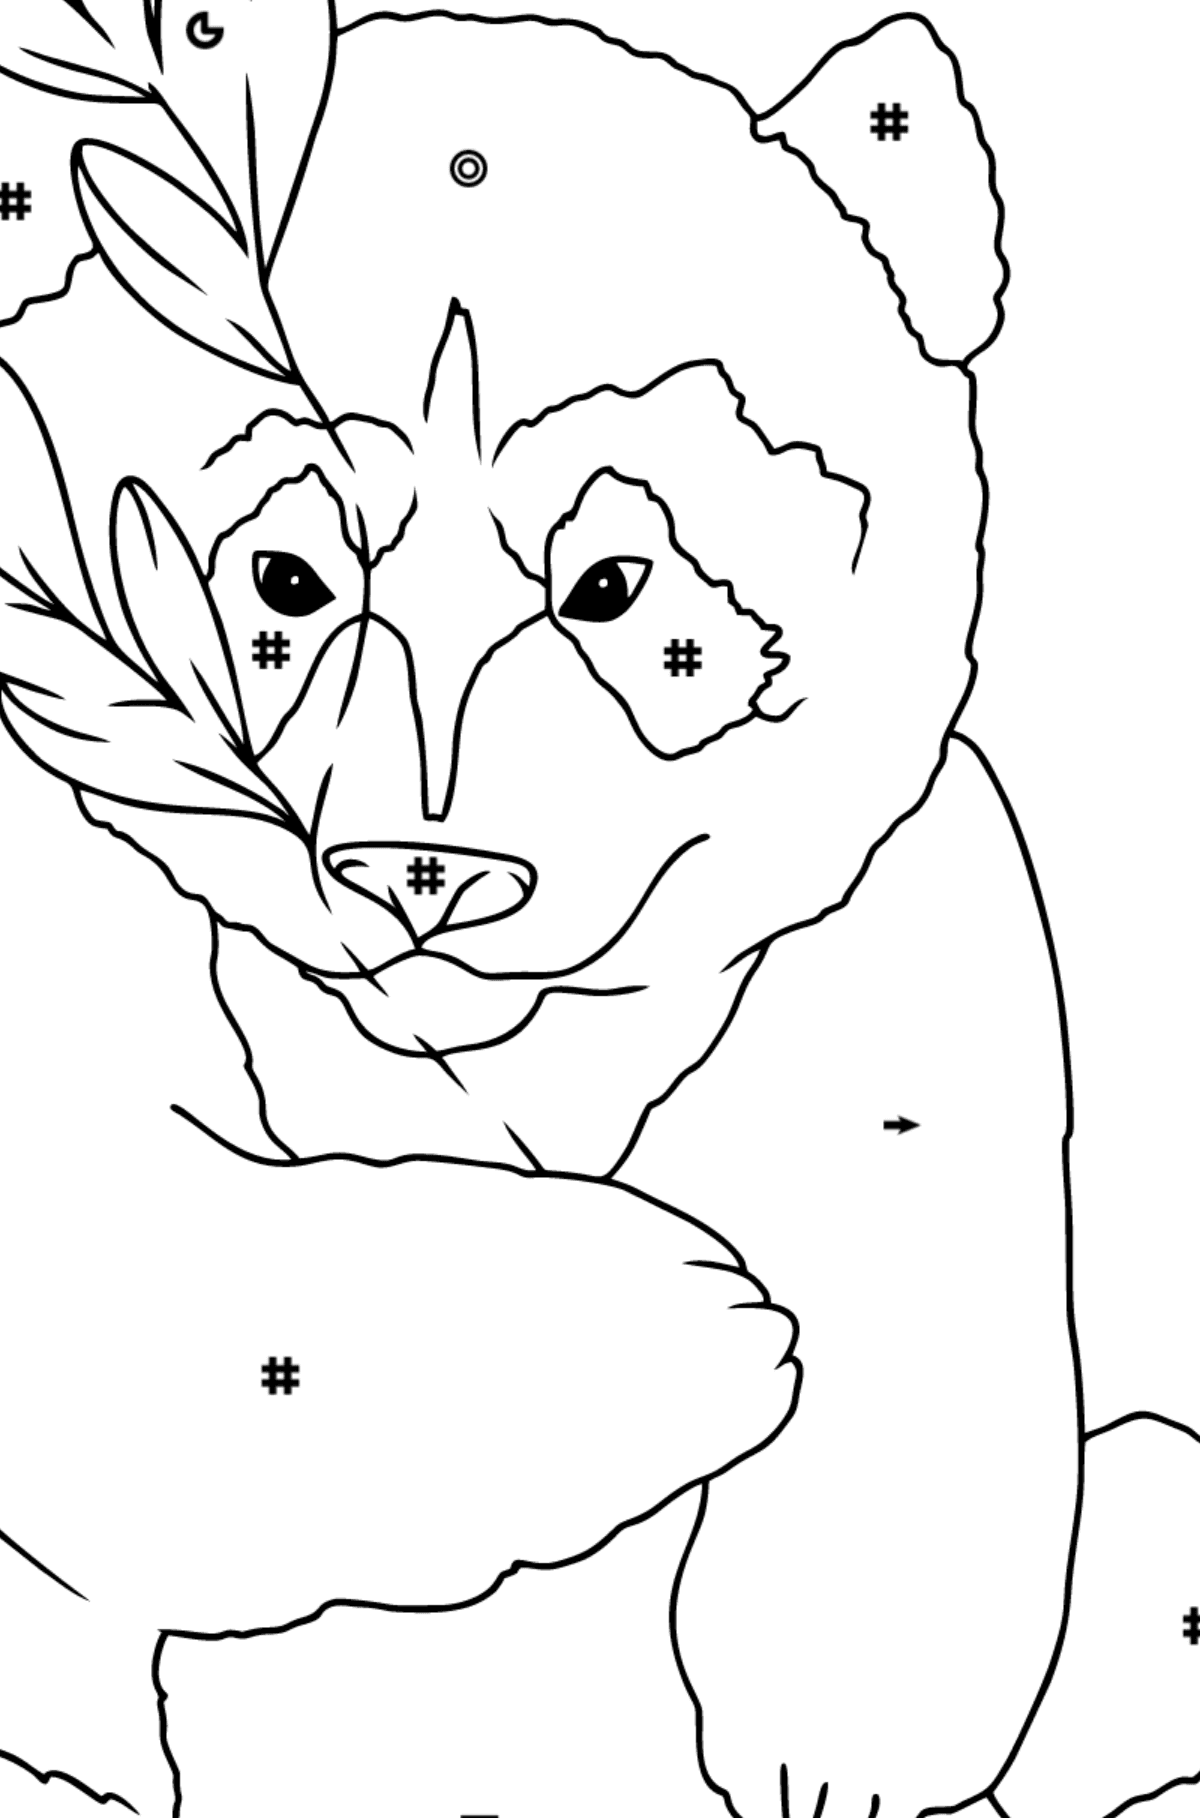 Coloring Page - A Panda is Hugging Bamboo Leaves - Coloring by Symbols and Geometric Shapes for Children